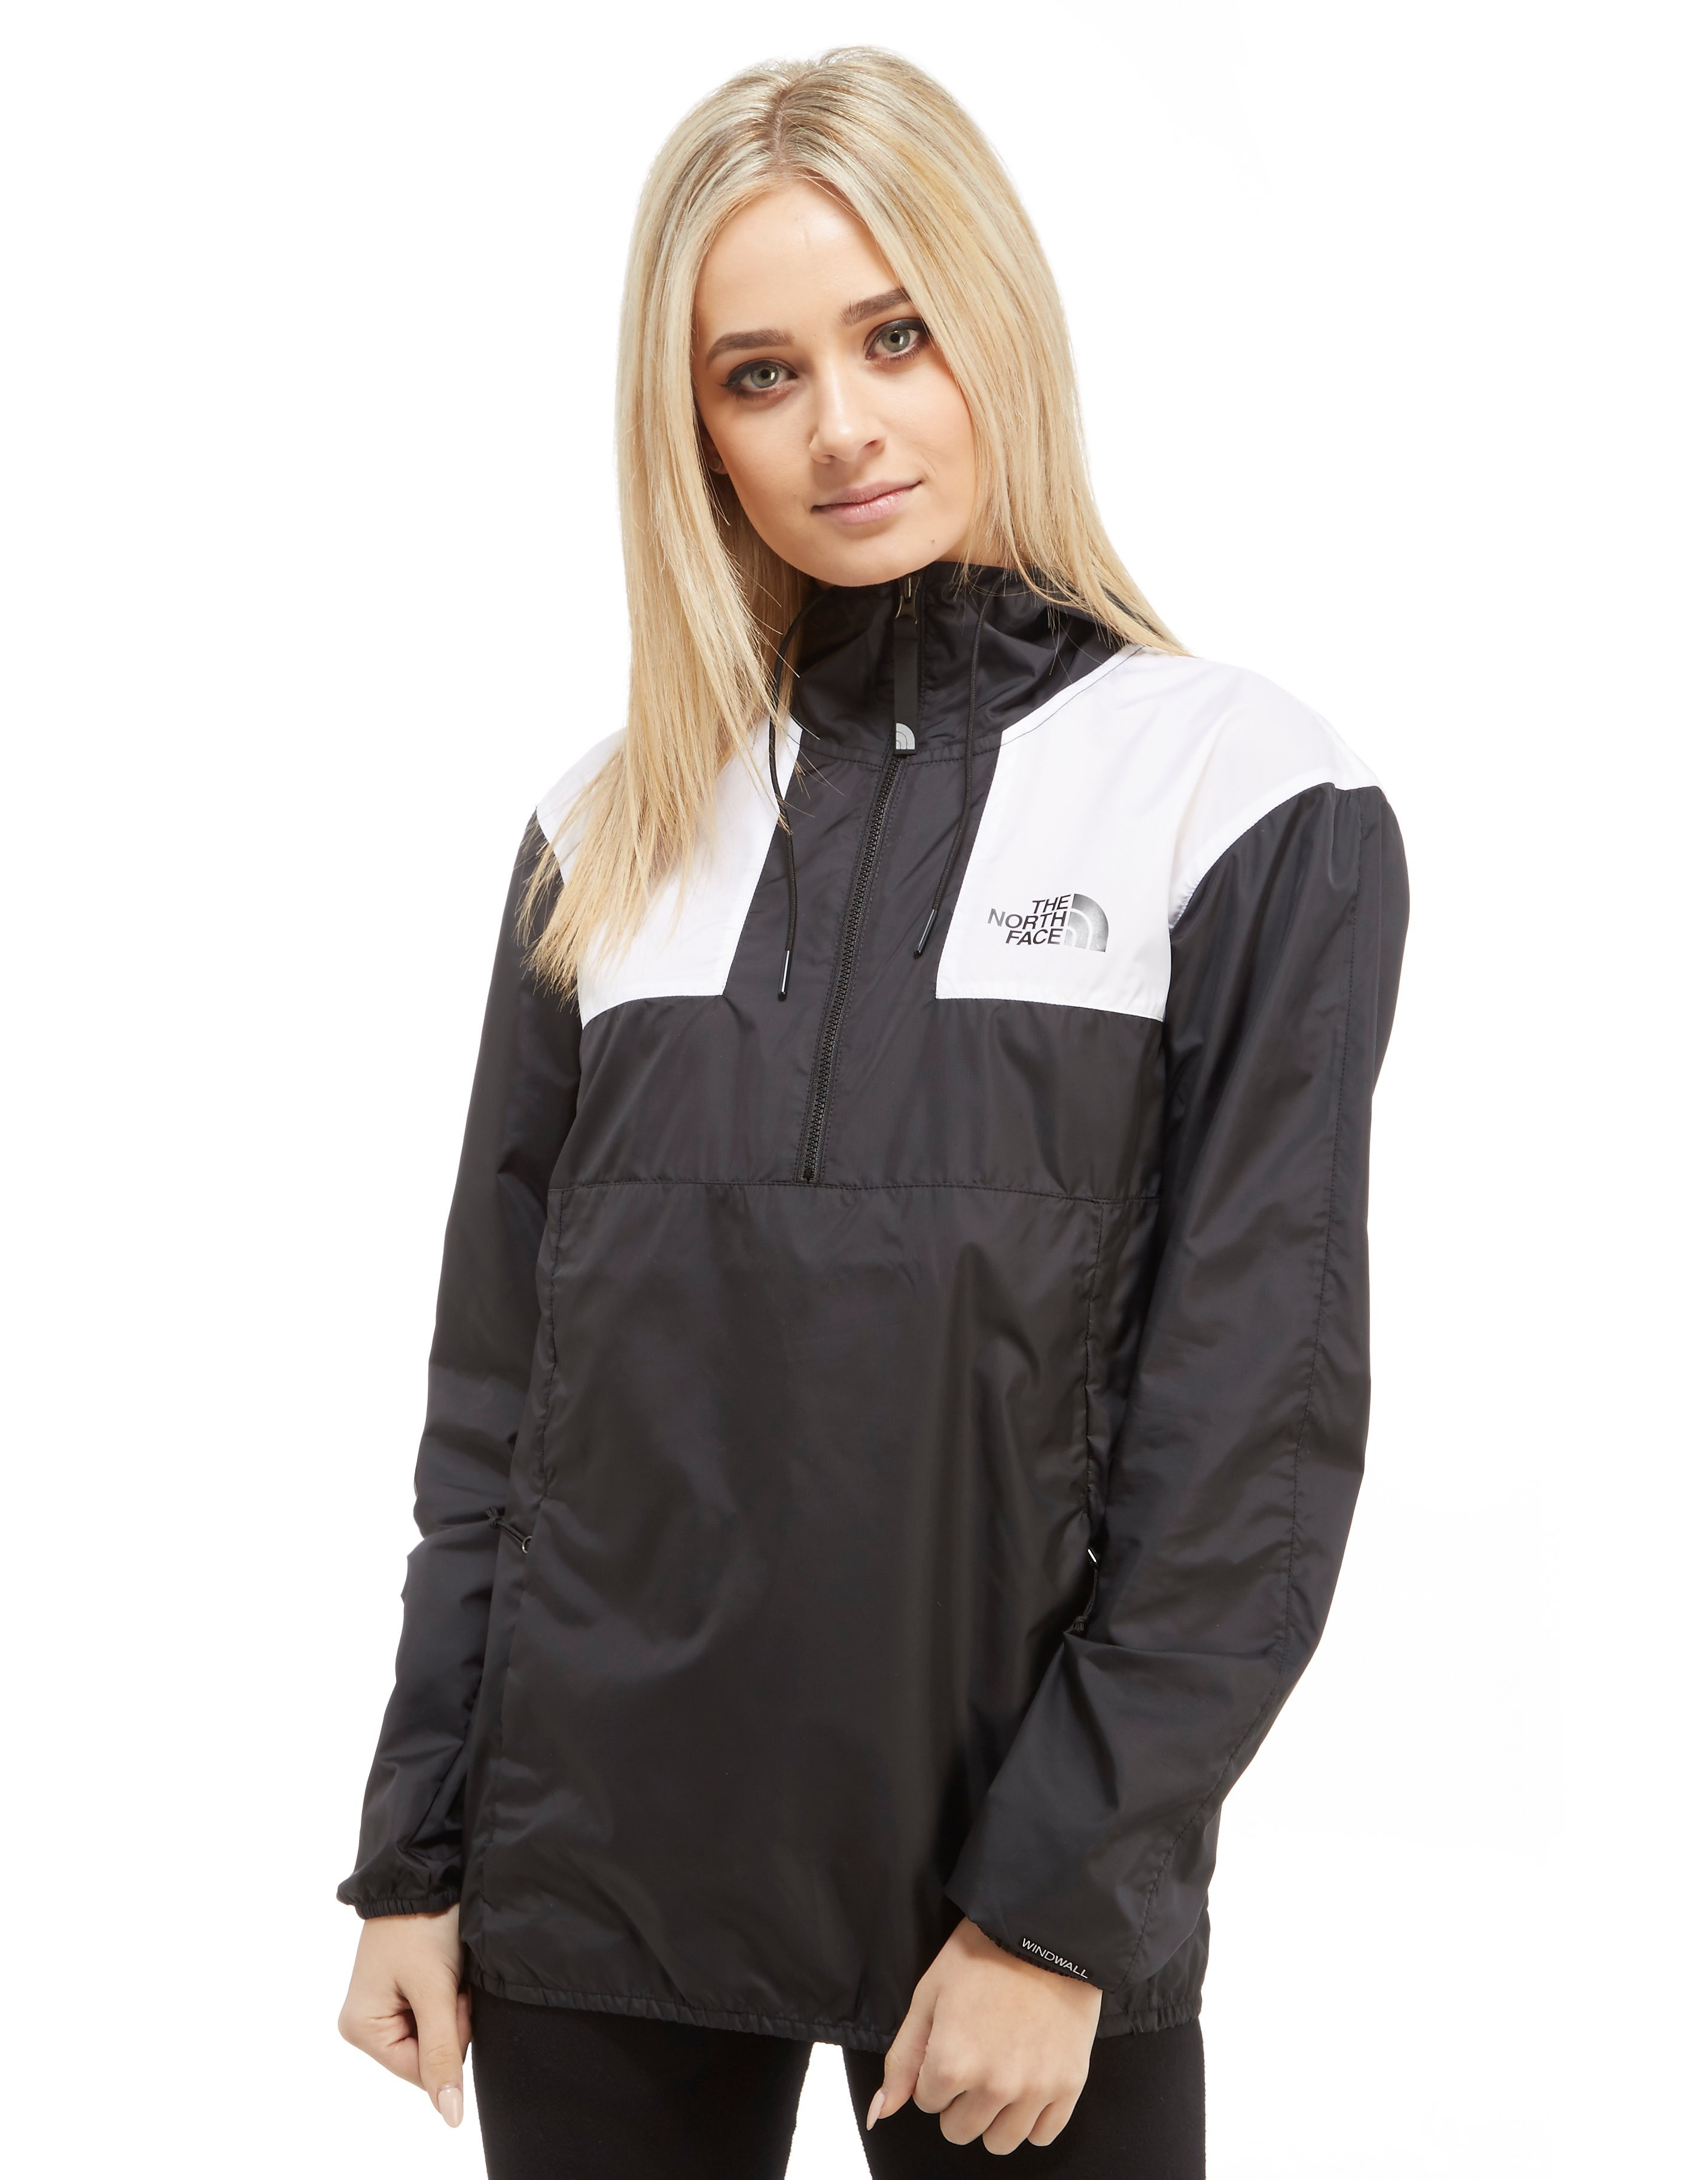 The North Face 1/4 Zip Wind Jacket